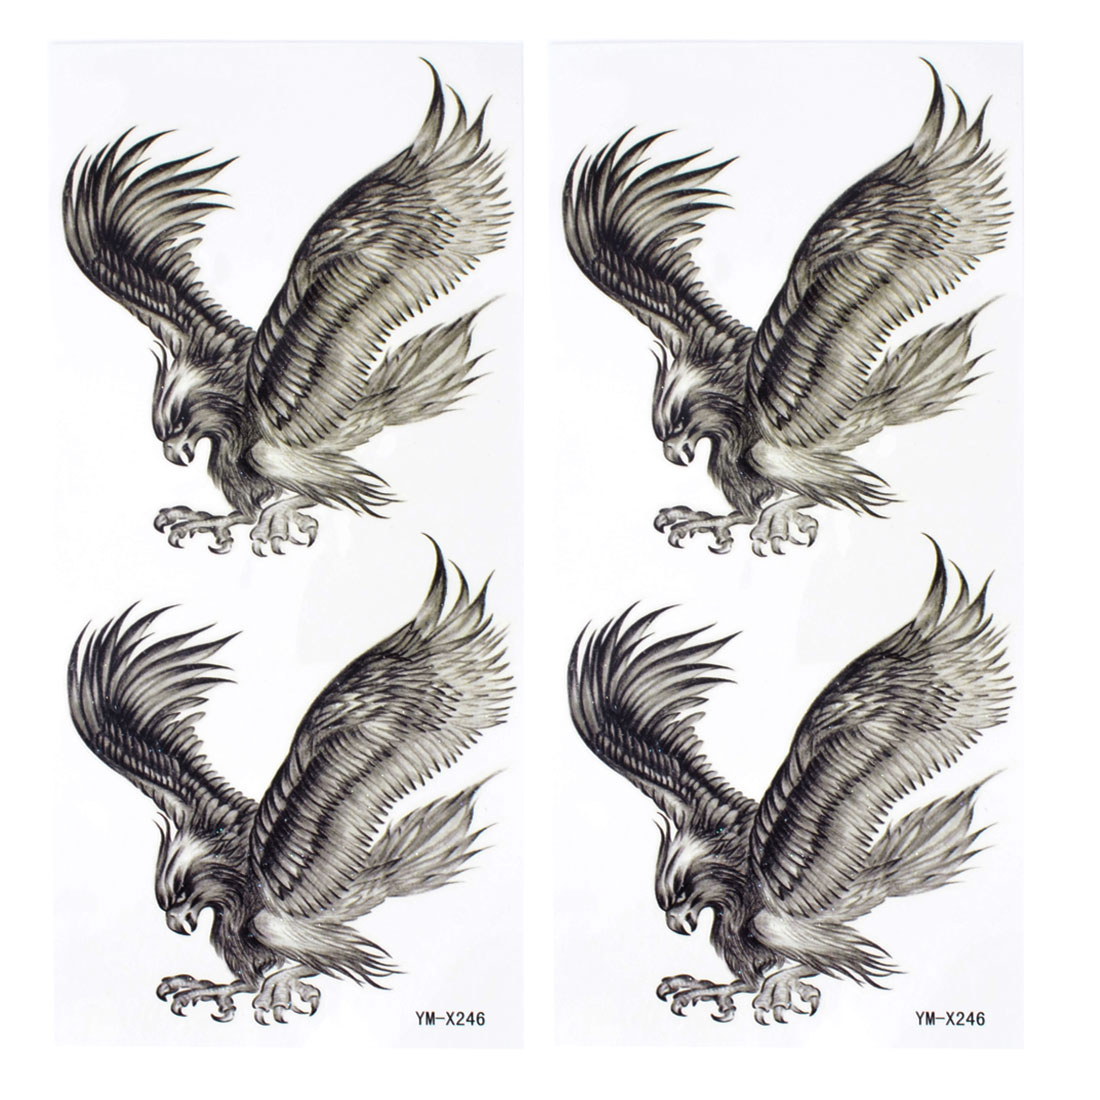 Skin Embellish Black Eagle Pattern Temporary Tattoo Transfer Sticker 2 Pcs